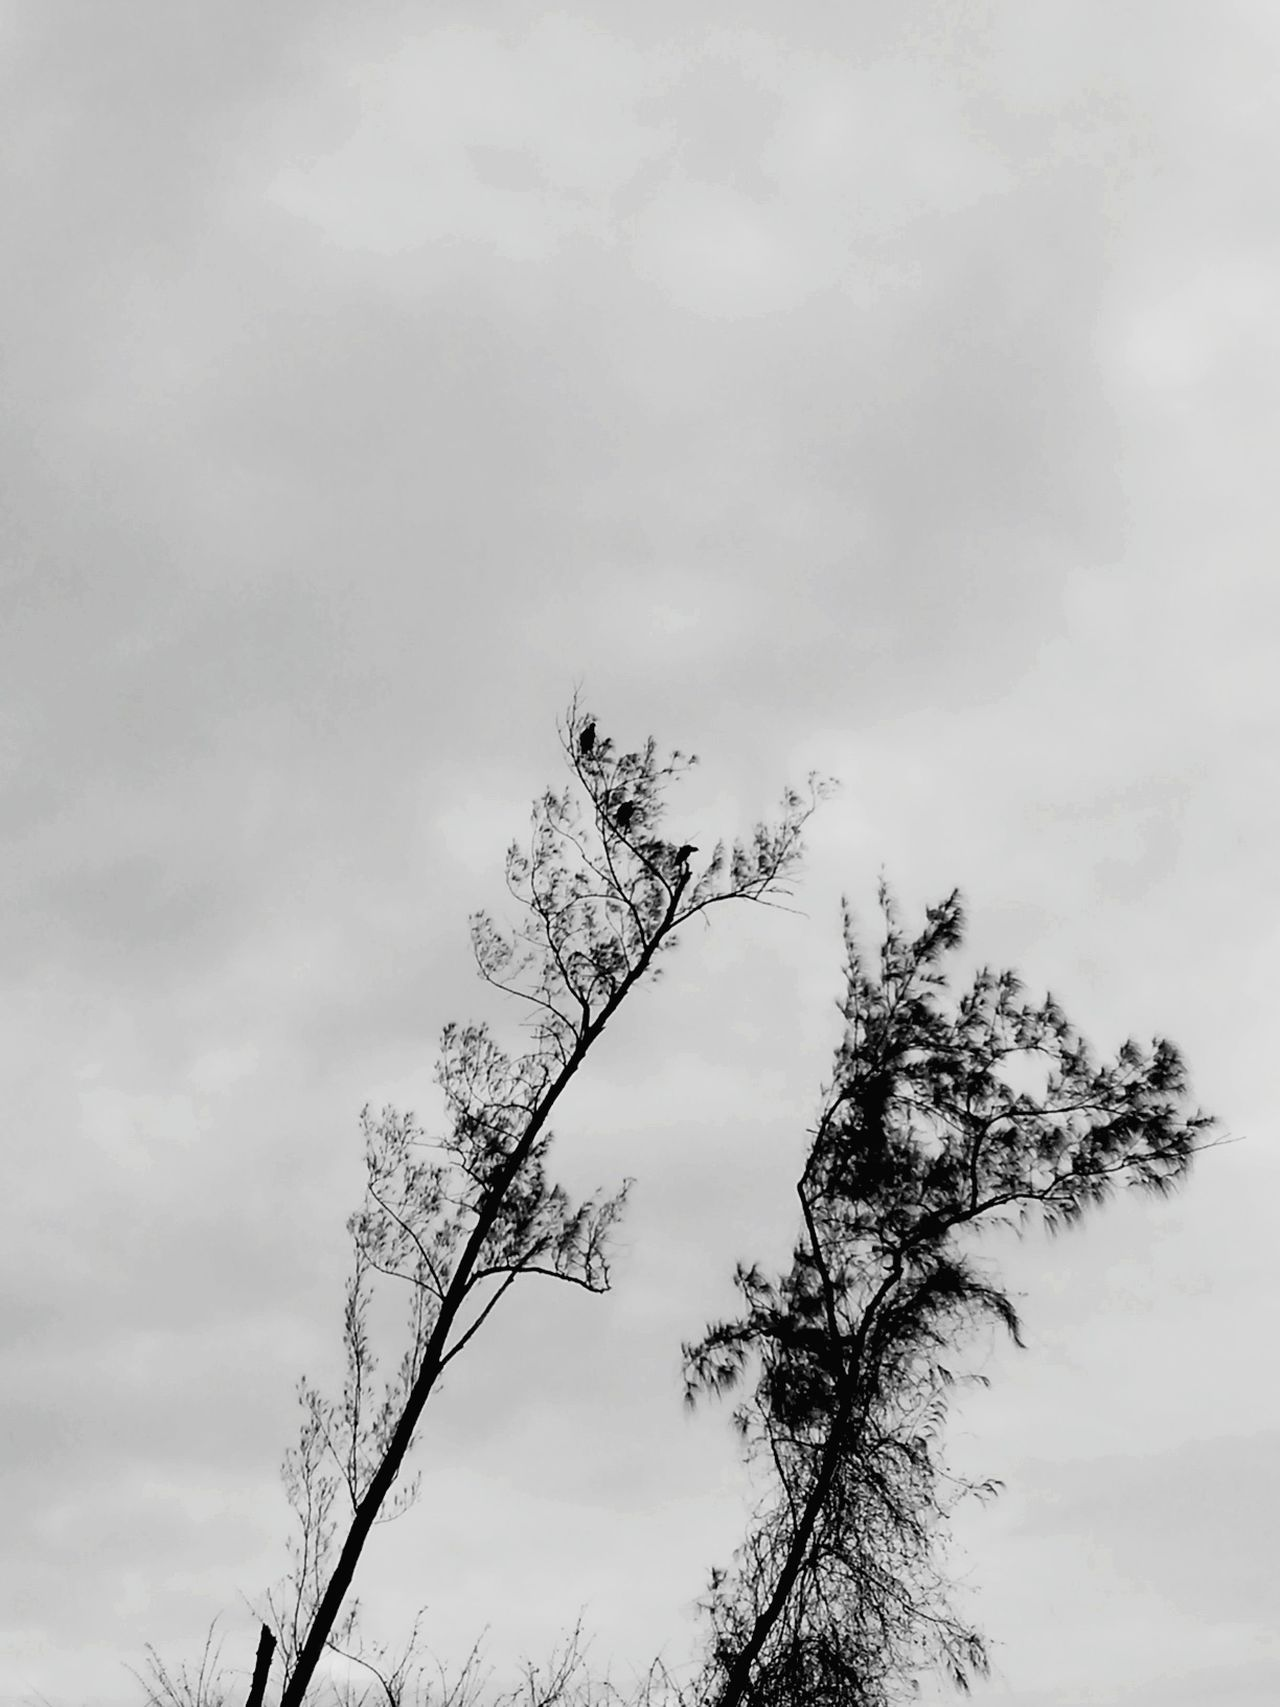 Black & White Black And White Photography Black And White Collection  Monochrome Hugging Trees Wild Birds Cloudy Day EyeEm Nature Lover Peaceful And Quiet Taking Photos